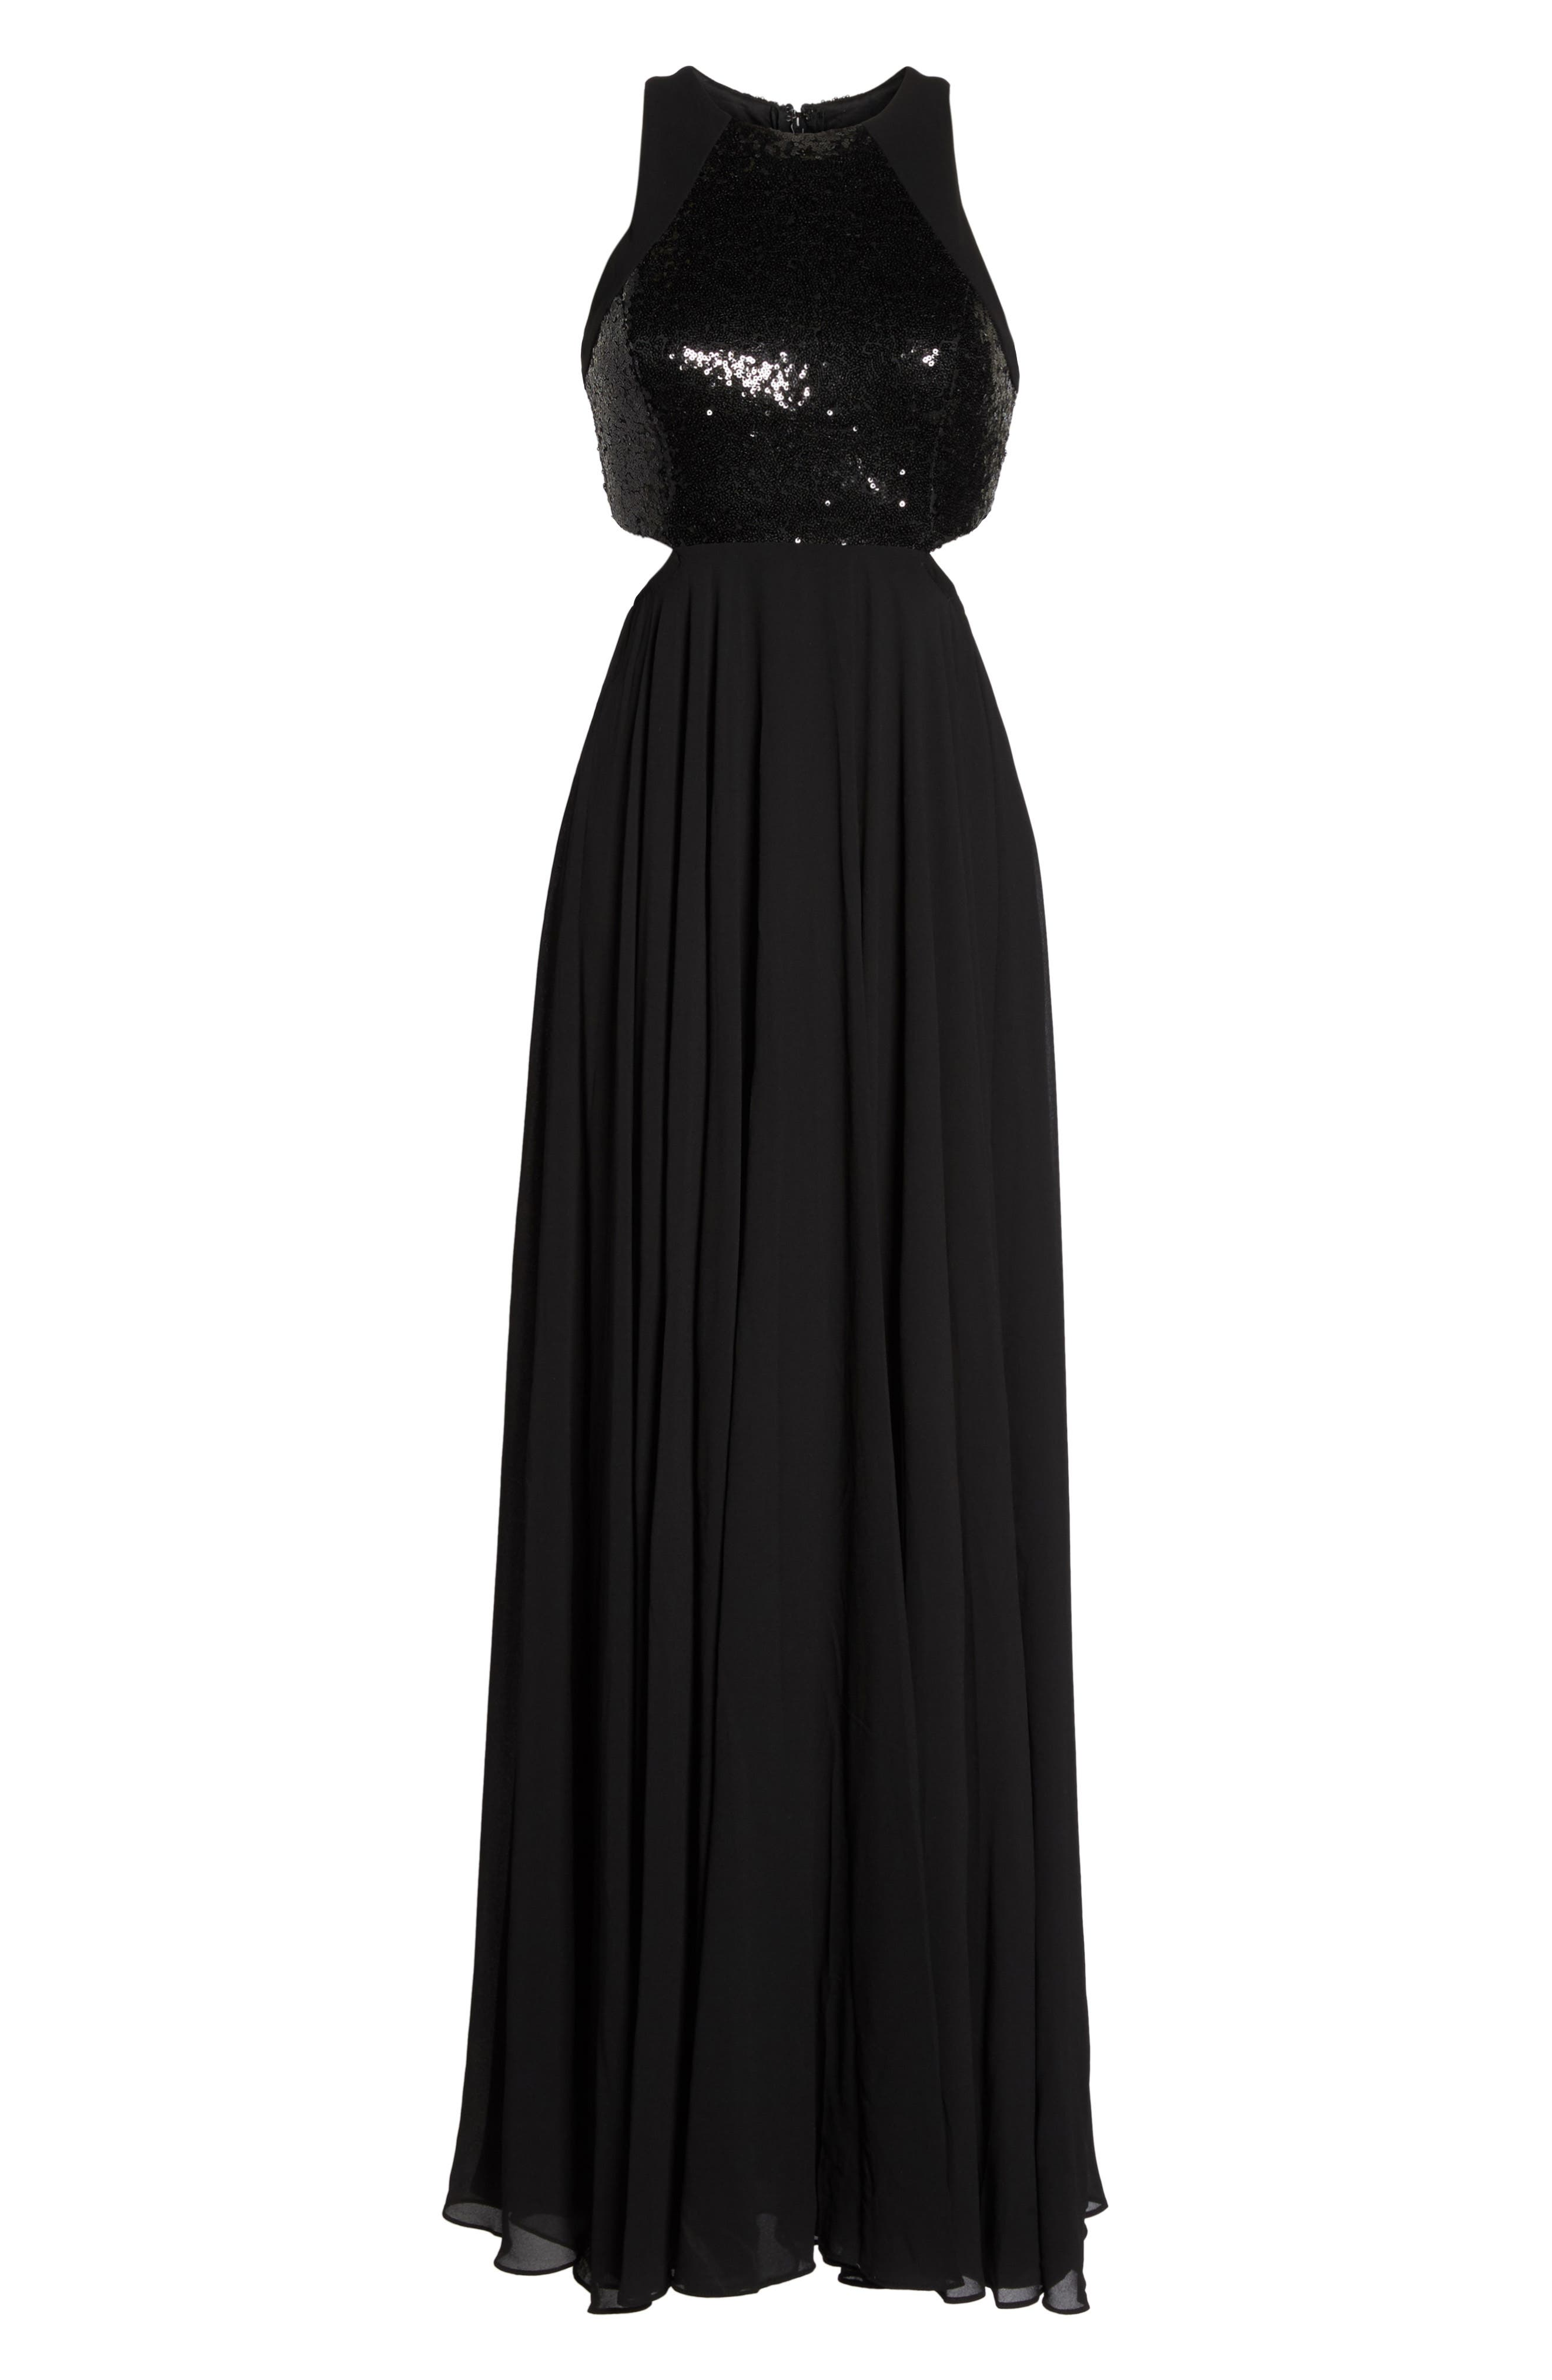 Nothing but Love Sequin Bodice Maxi Dress,                             Alternate thumbnail 6, color,                             Black